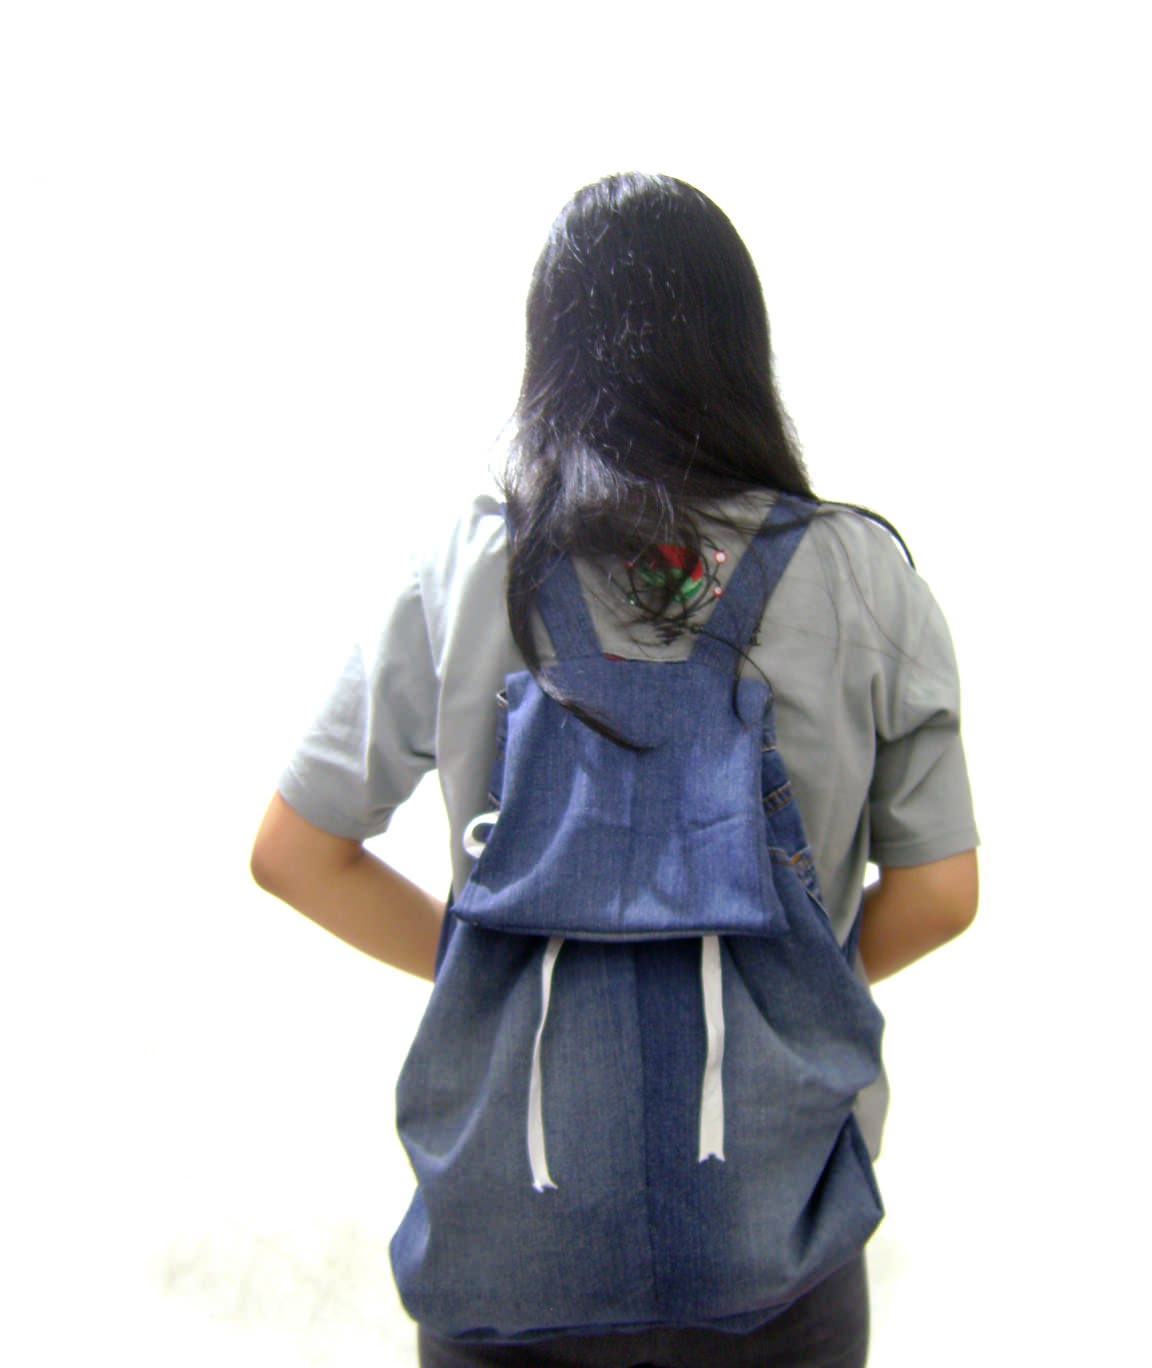 Back to School DIY Denim Backpack from Old Jeans